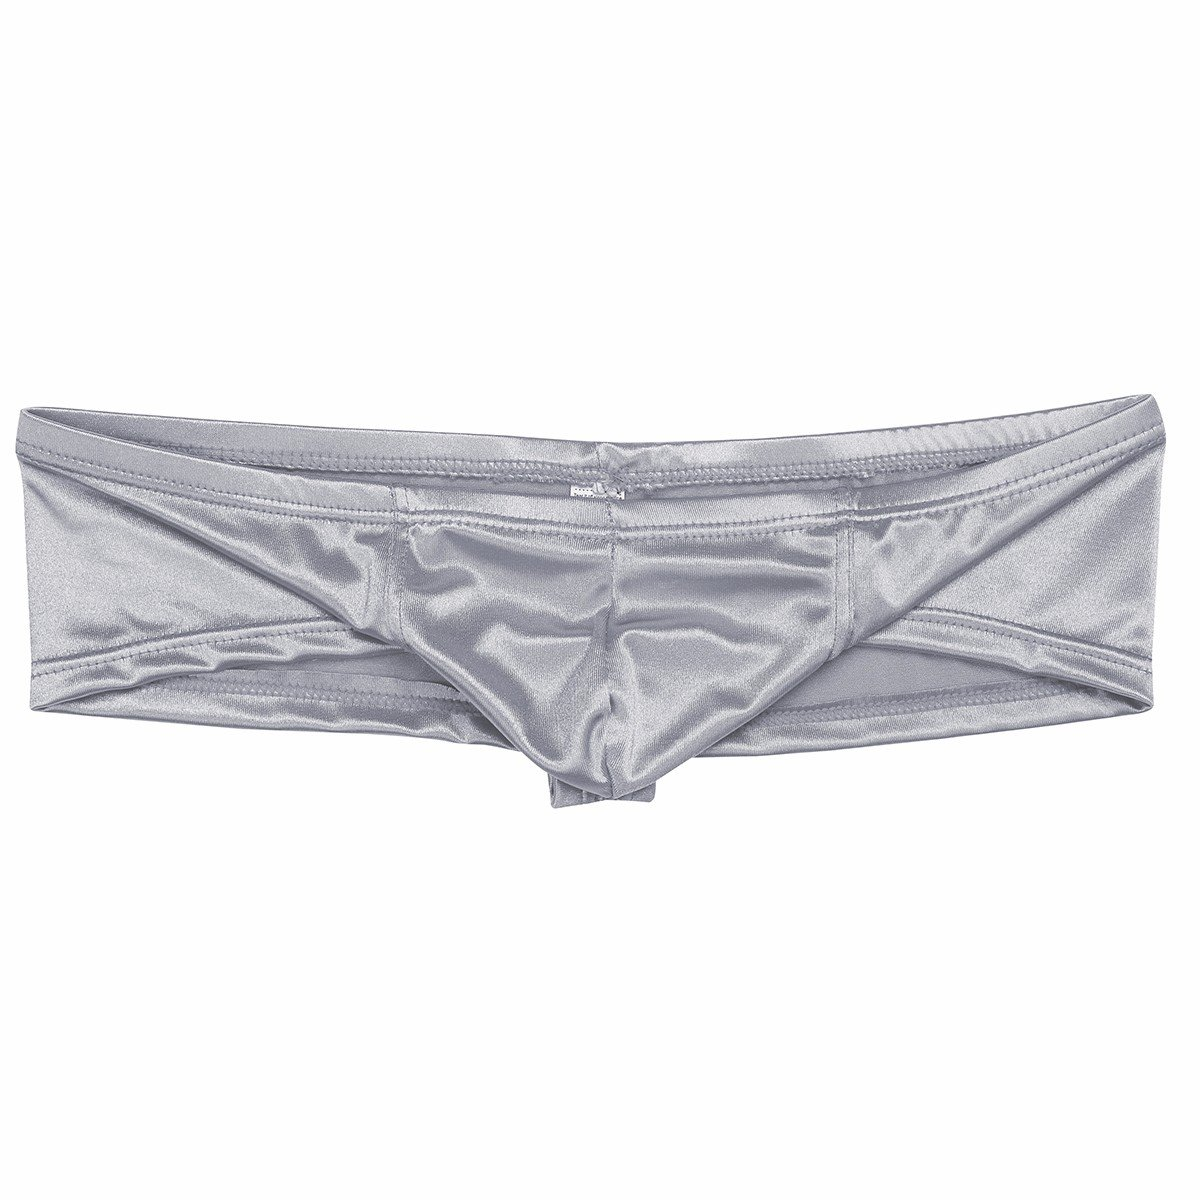 ba2cd6aa2f1a iEFiEL Mens Shiny Cap Cover Bulge Pouch Low Rise Mini Bikini Briefs  Lingerie Underwear Silver L < G-Strings & Thongs < Clothing, Shoes &  Jewelry - tibs